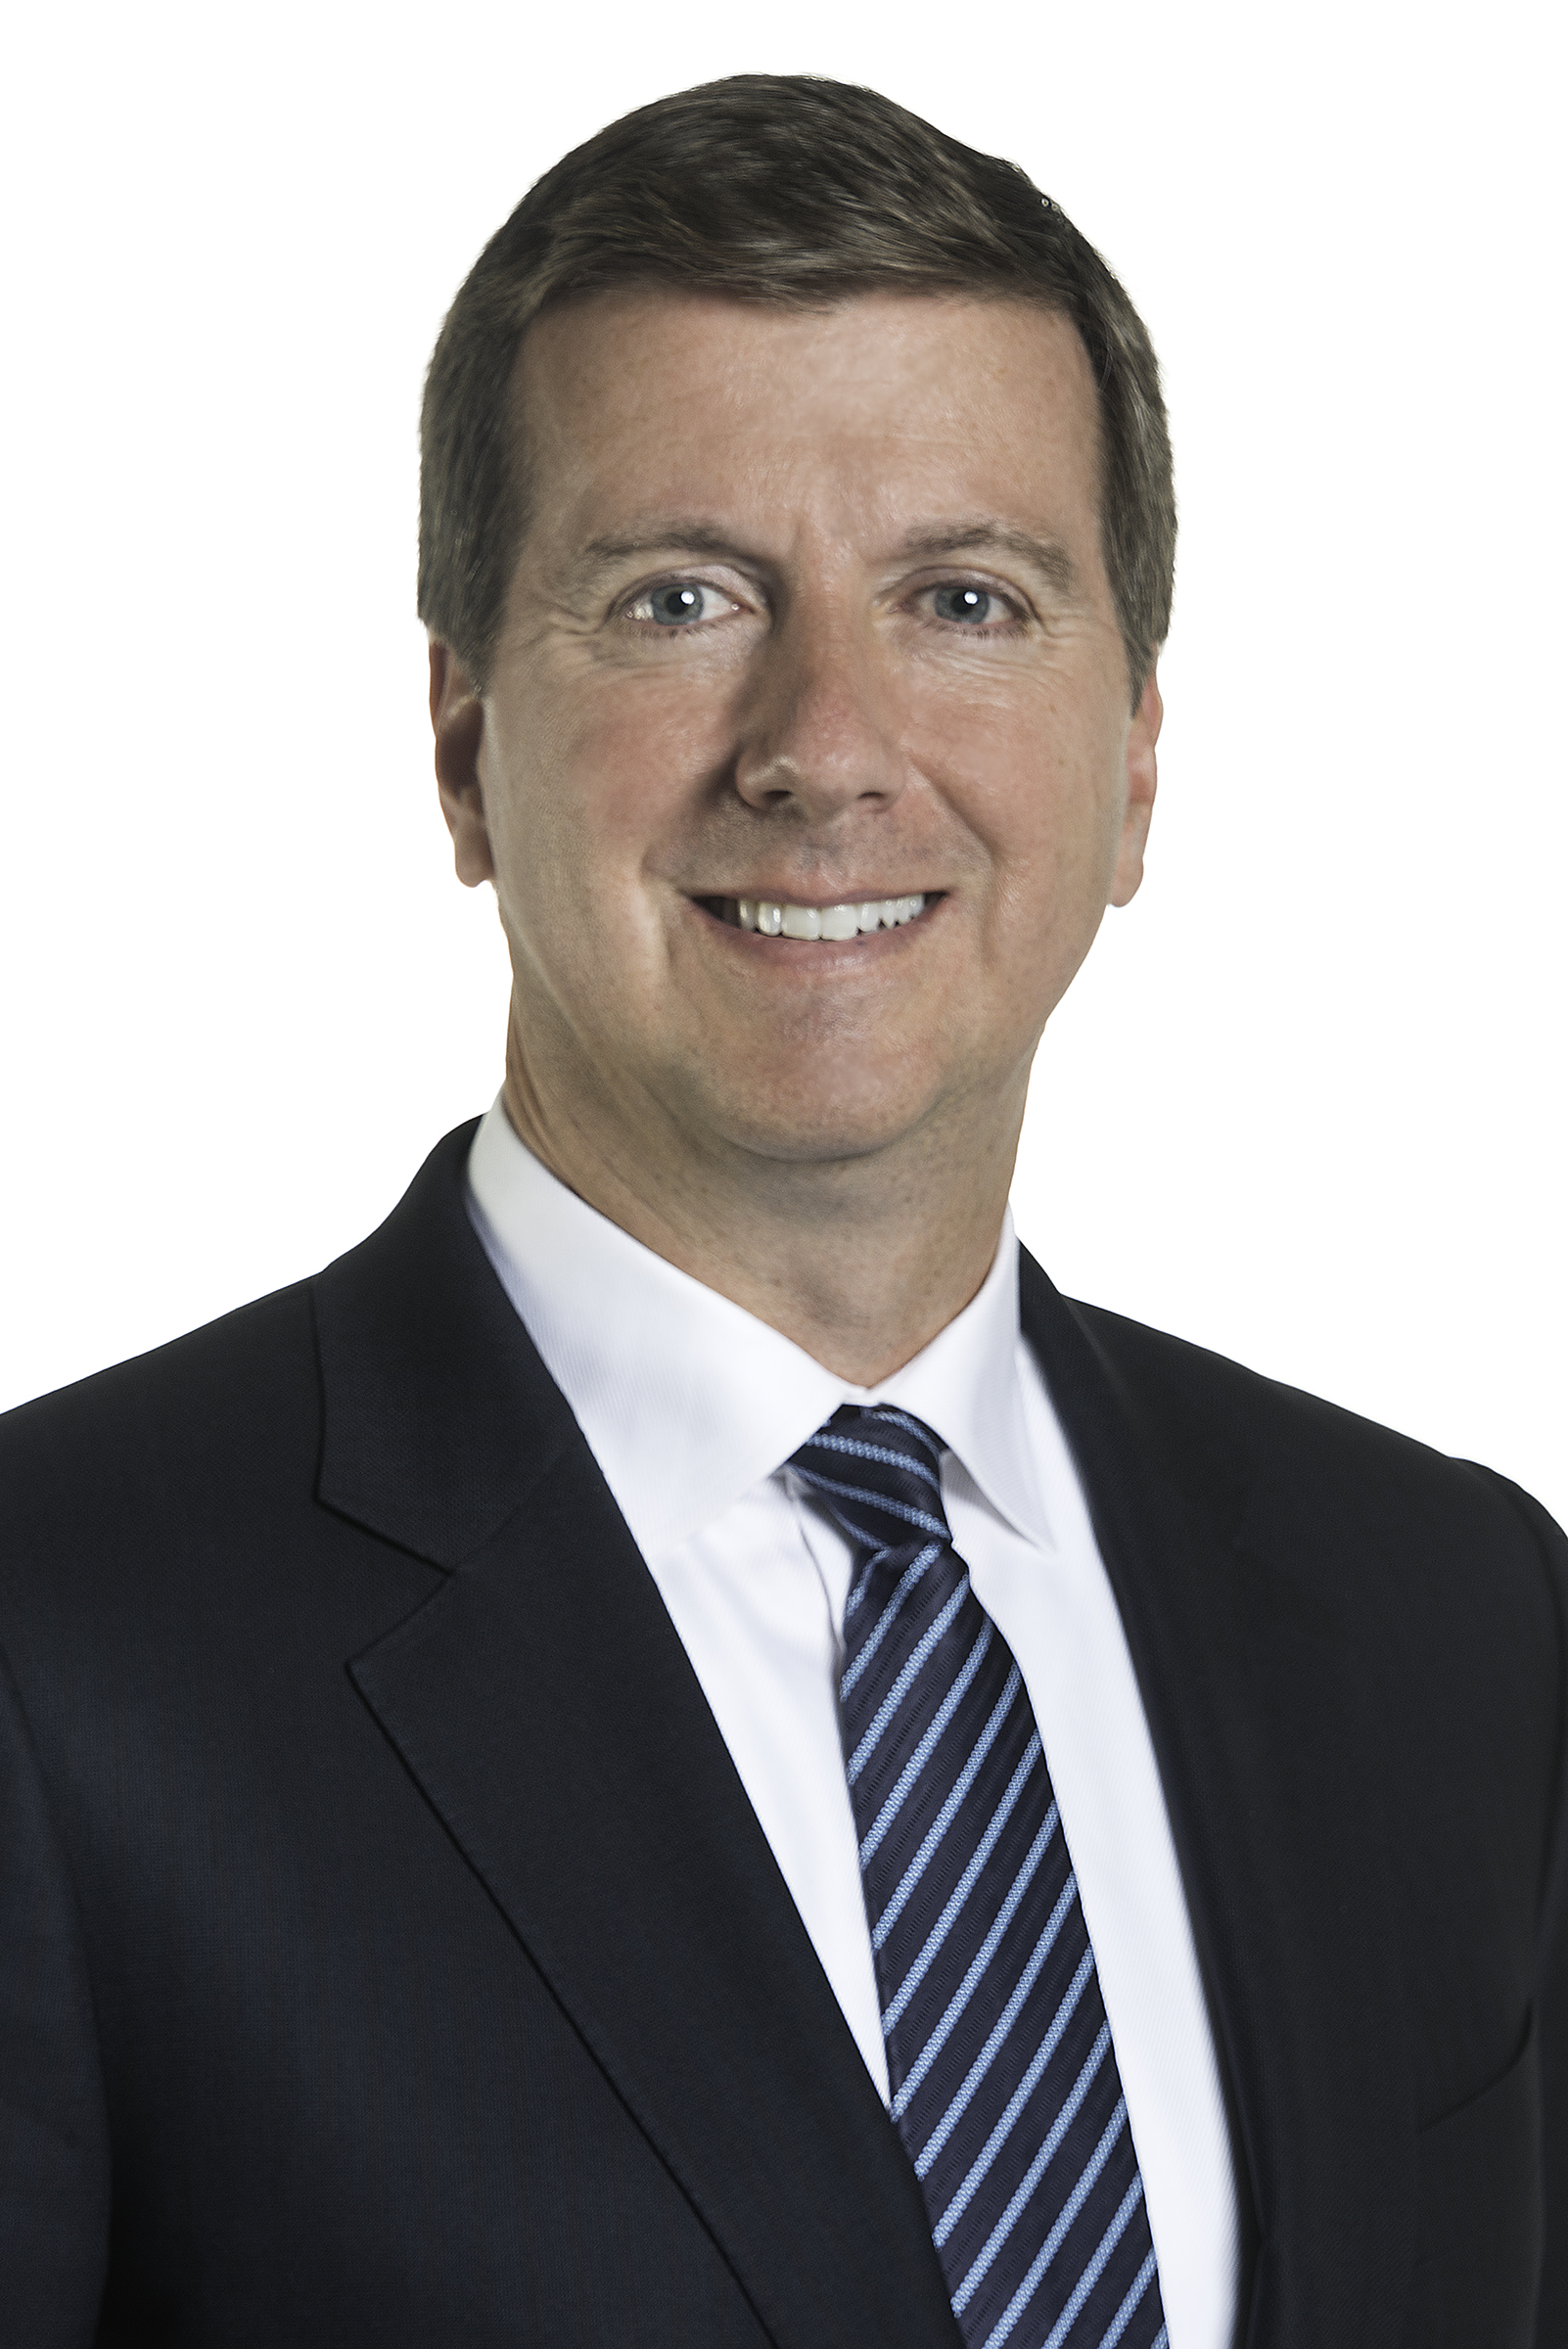 Barry McInerney, President and Chief Executive Officer Mackenzie Investments.